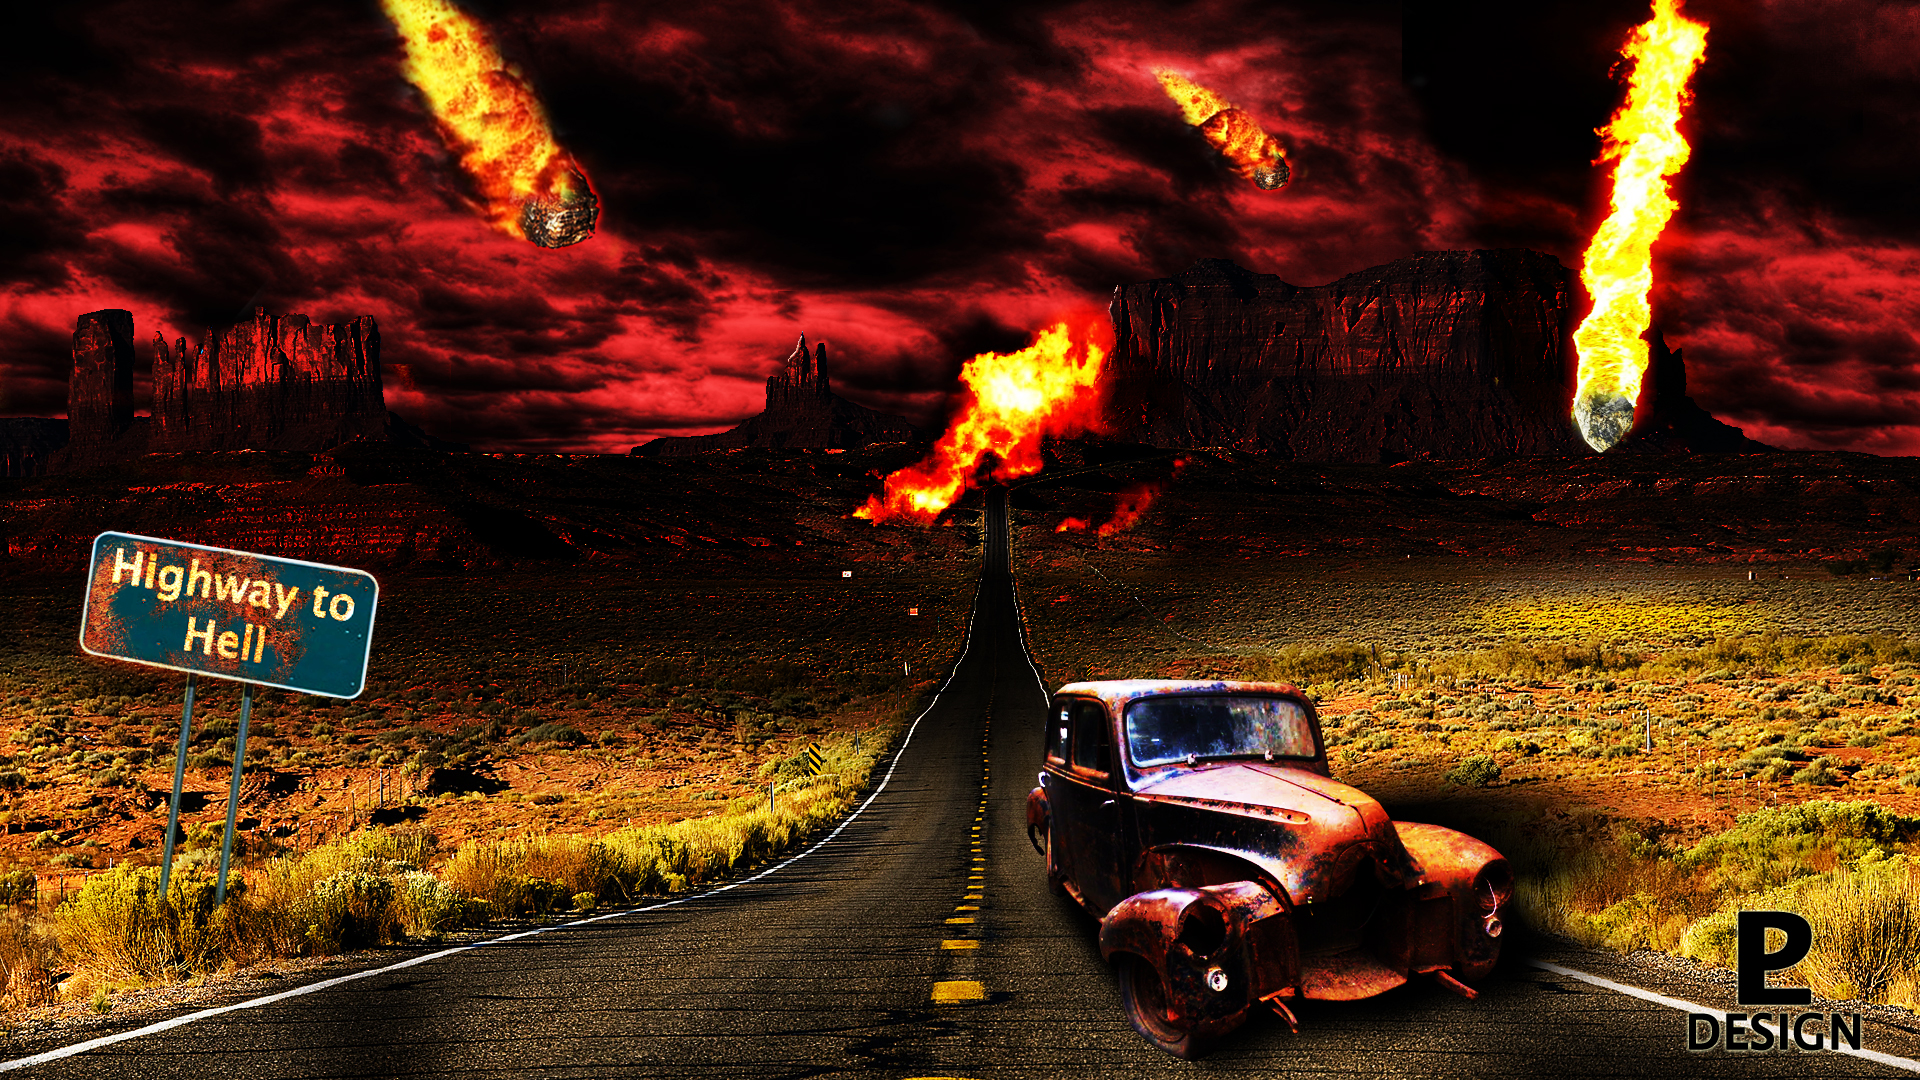 Highway to Hell by PAulie-SVK on DeviantArt